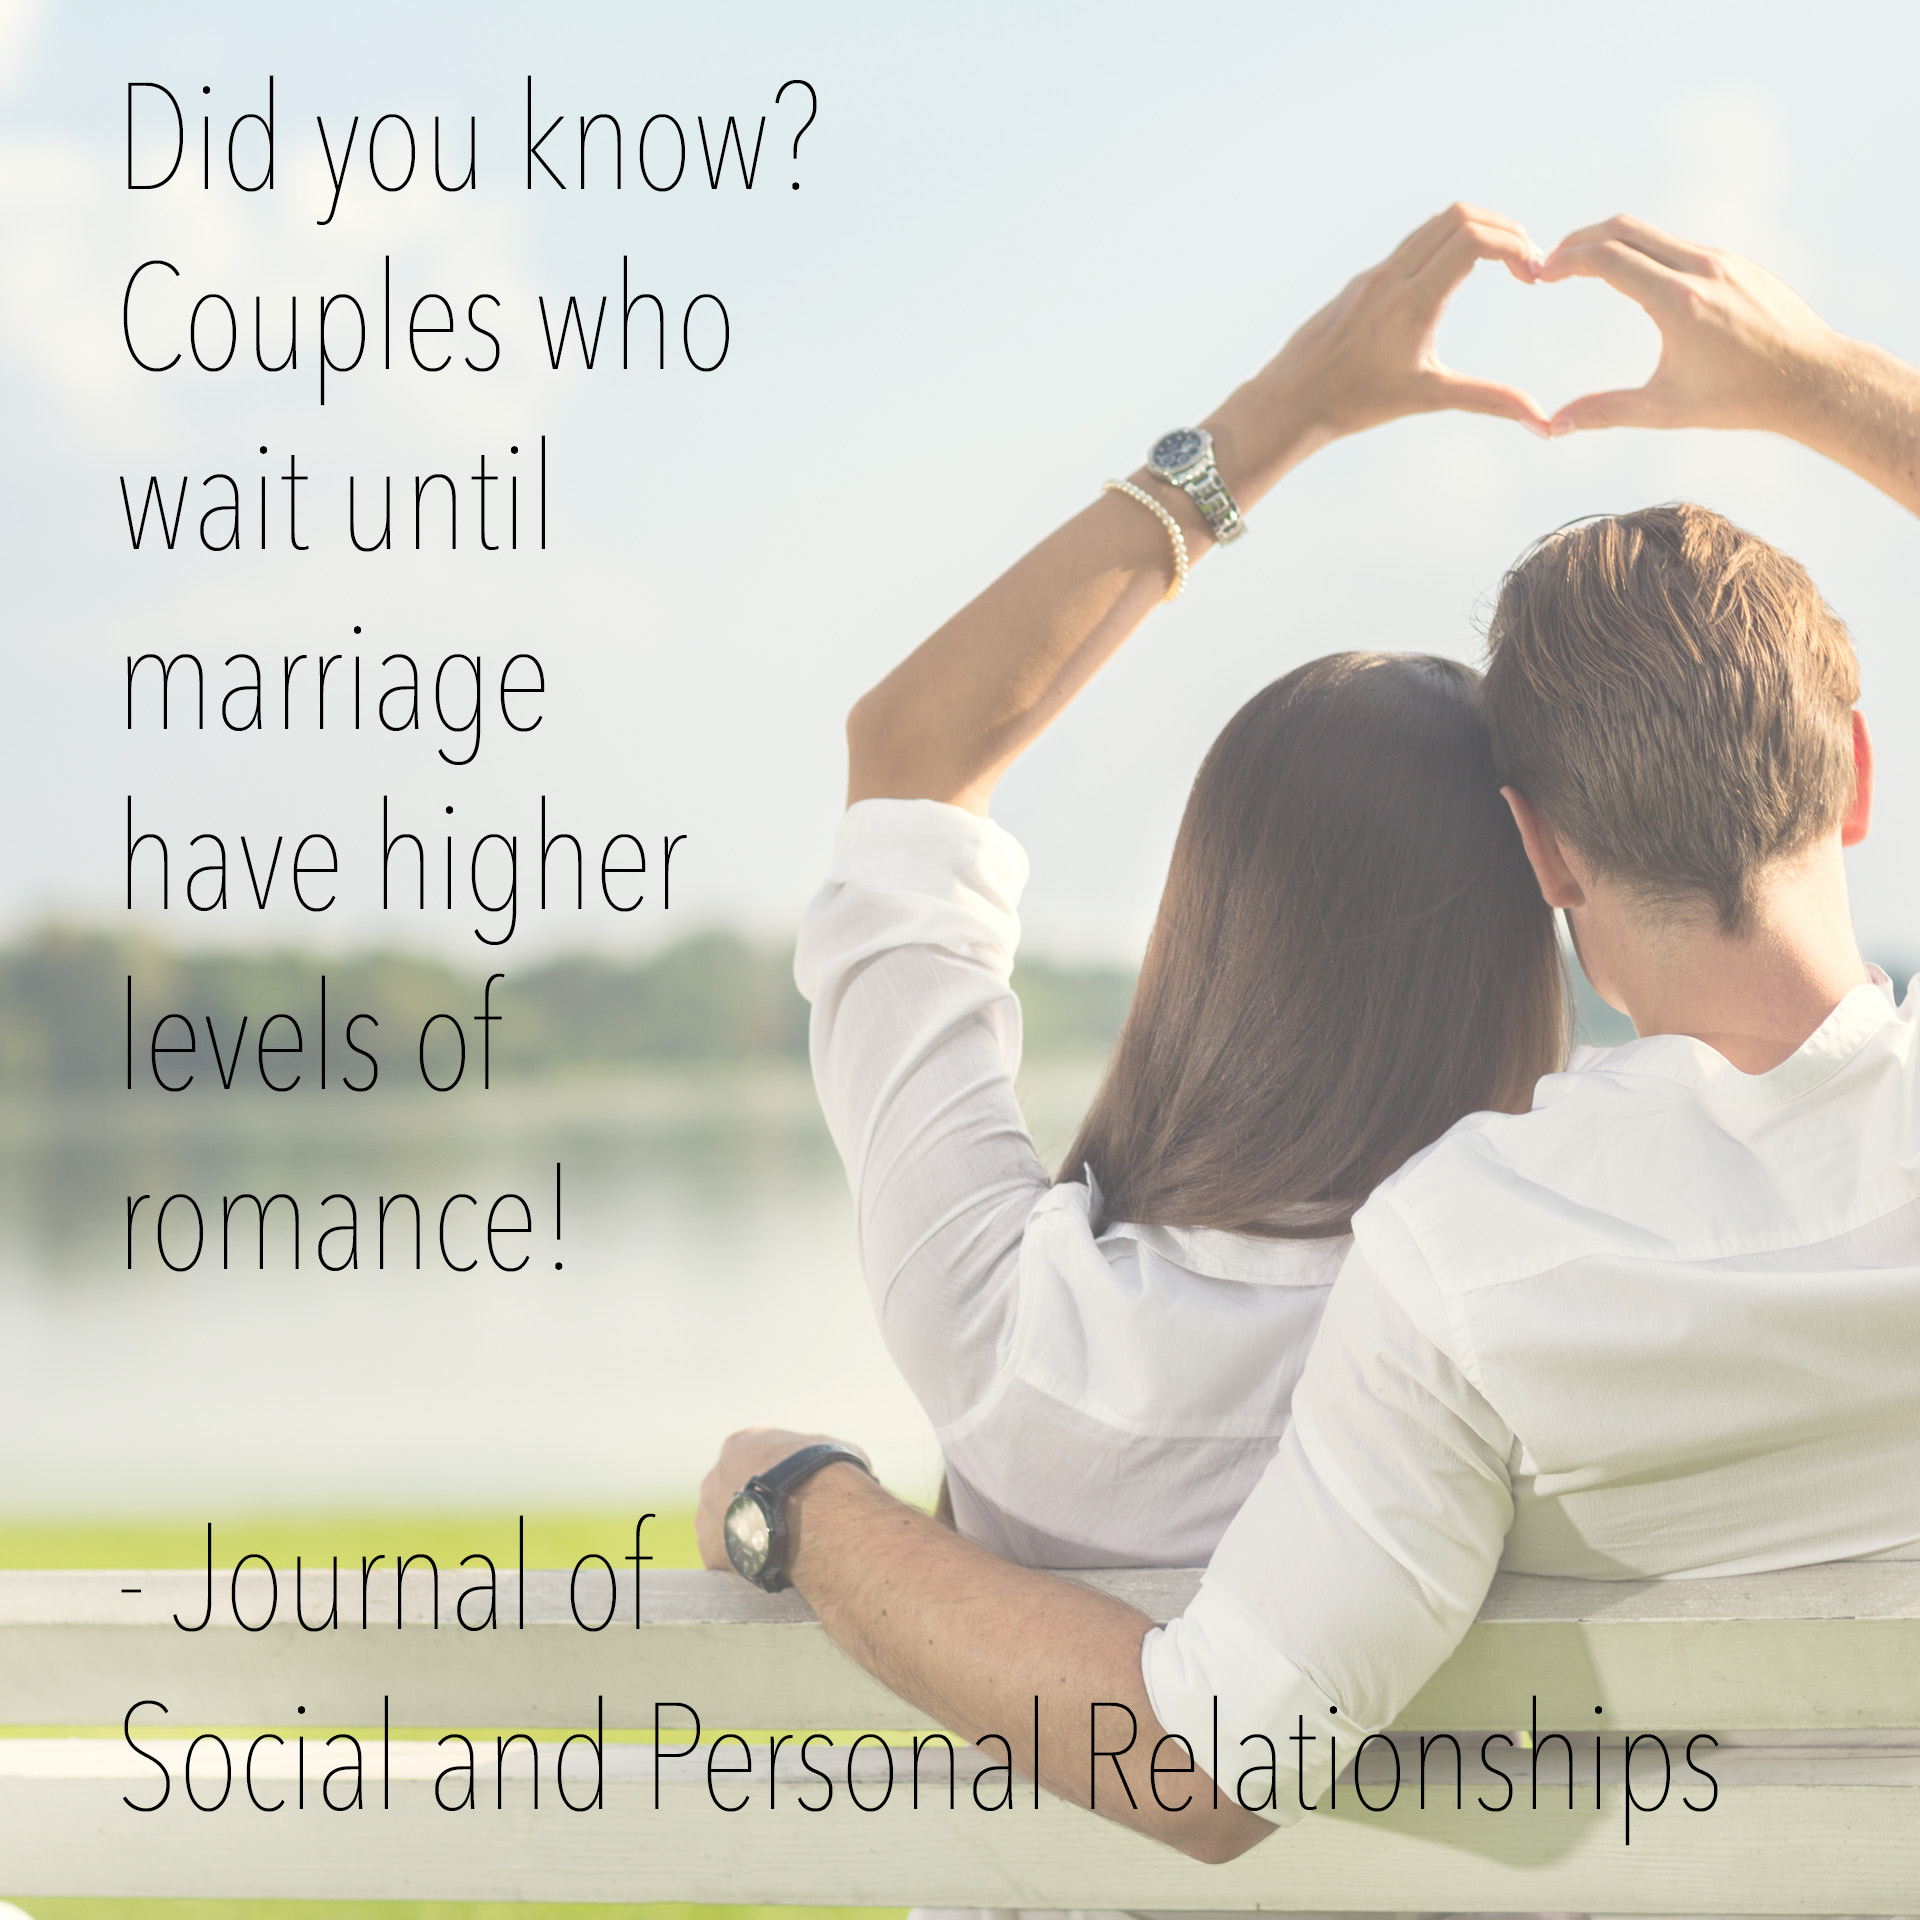 Did you know? Couples who wait until marriage have higher levels of romance! - Journal of Social and Personal Relationships